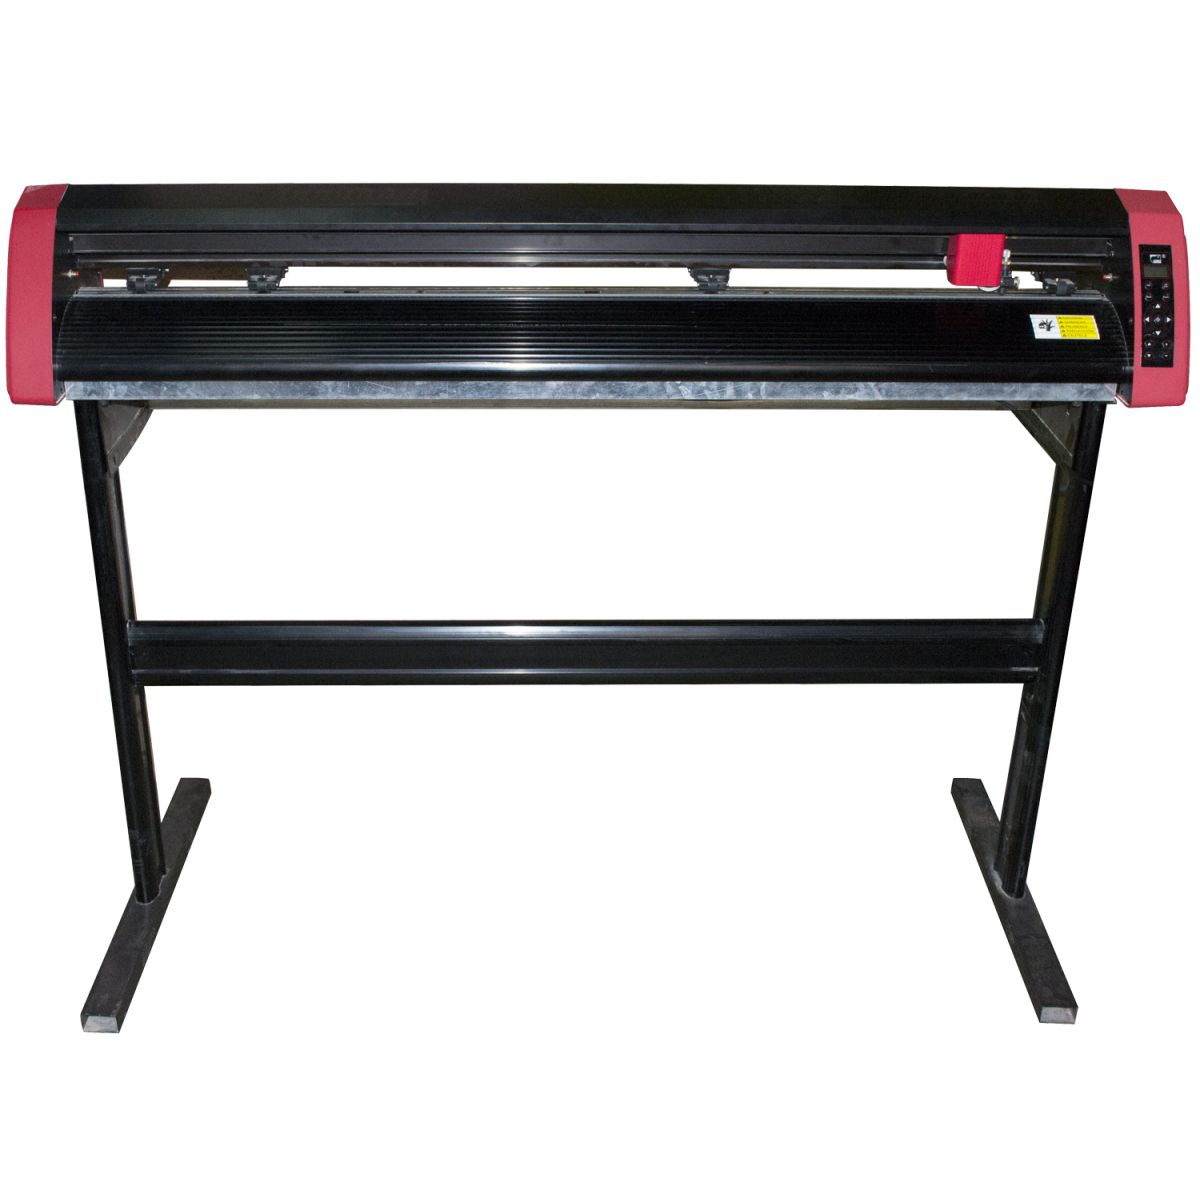 Plotter de Recorte Digital com Laser de Contorno 130cm CREATION + Pedestal